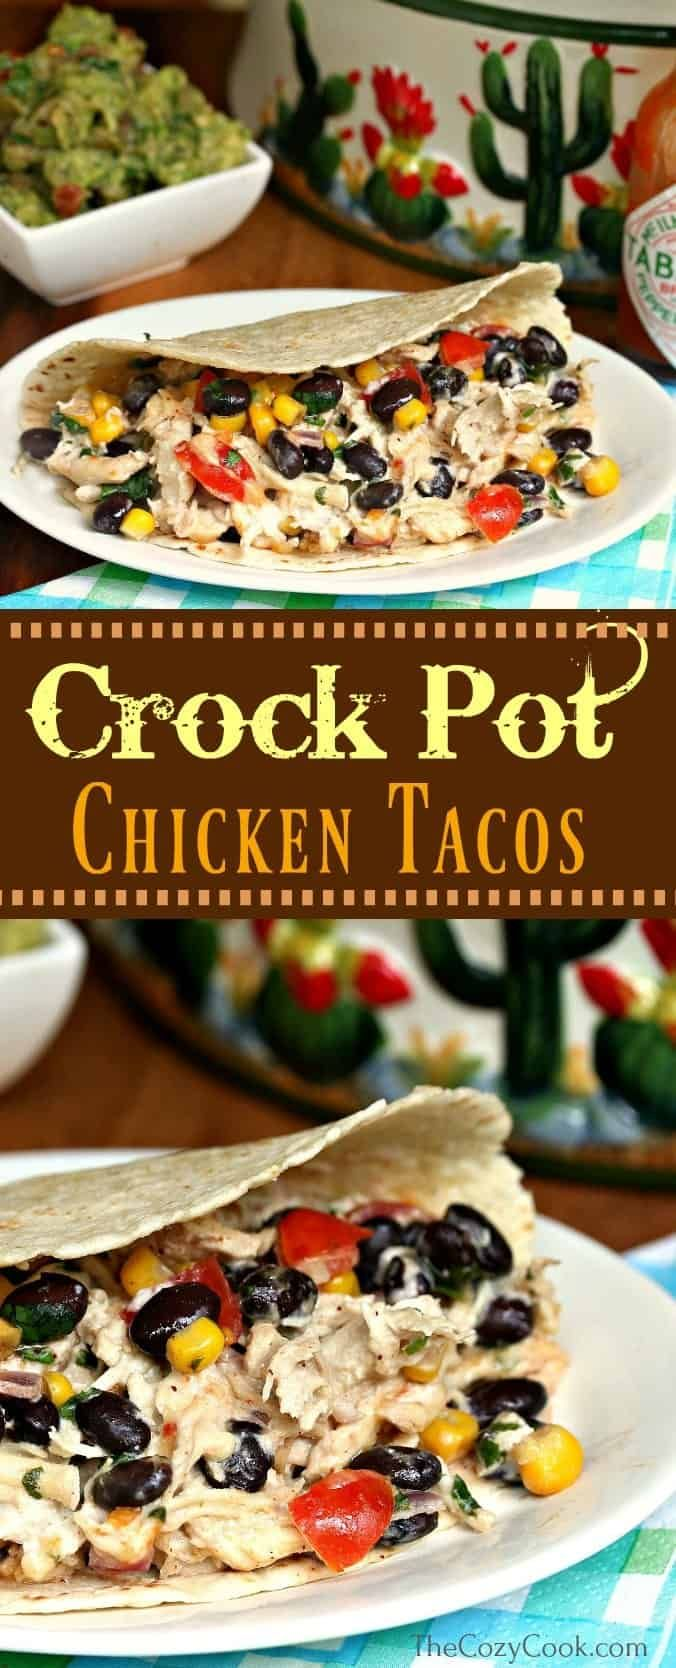 These crock pot chicken tacos are loaded with shredded chicken and a creamy taco mixture full of your favorite Mexican flavors! This is delicious over lettuce wraps, rice, or taco shells! | The Cozy Cook | #Tacos #Chicken #CrockPot #SlowCooker #Mexican #Dinner #TacoTuesday #ShreddedChicken #BlackBeans #shreddedchickentacos